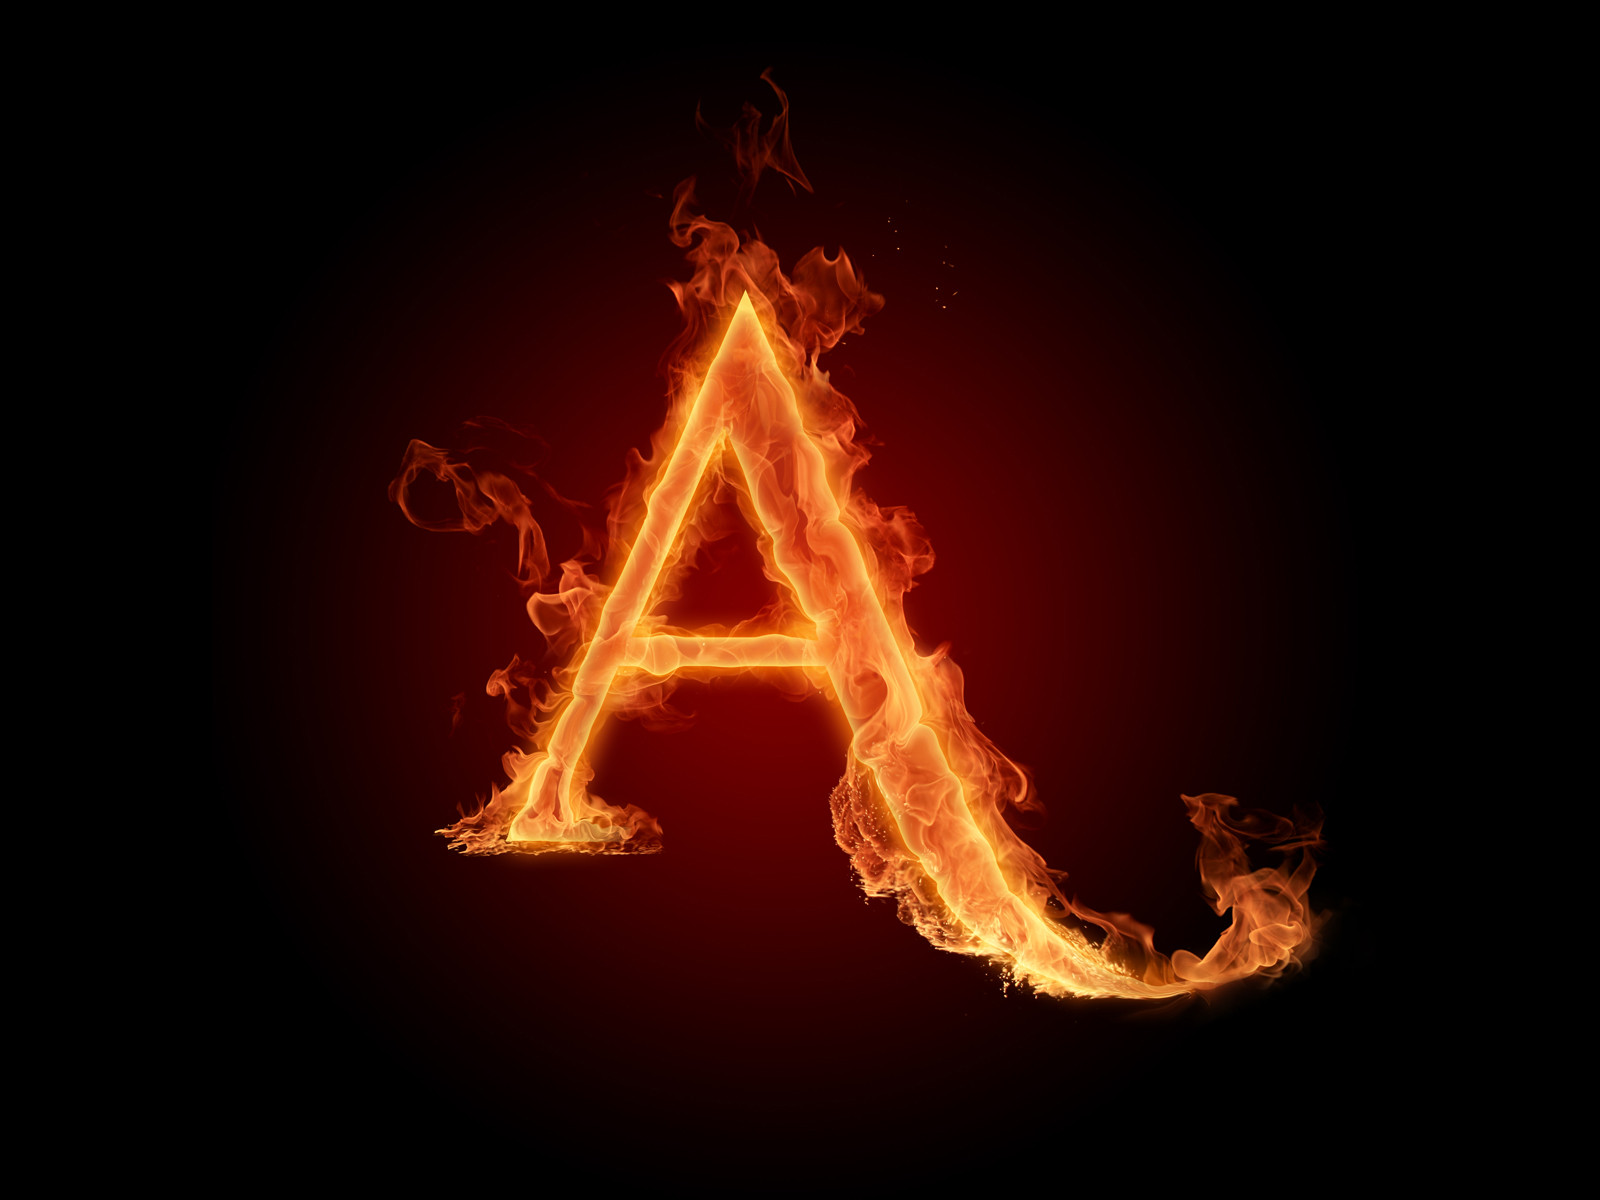 Hd Fire Fonts Fiery Letters And Fiery Numbers 1600x1200